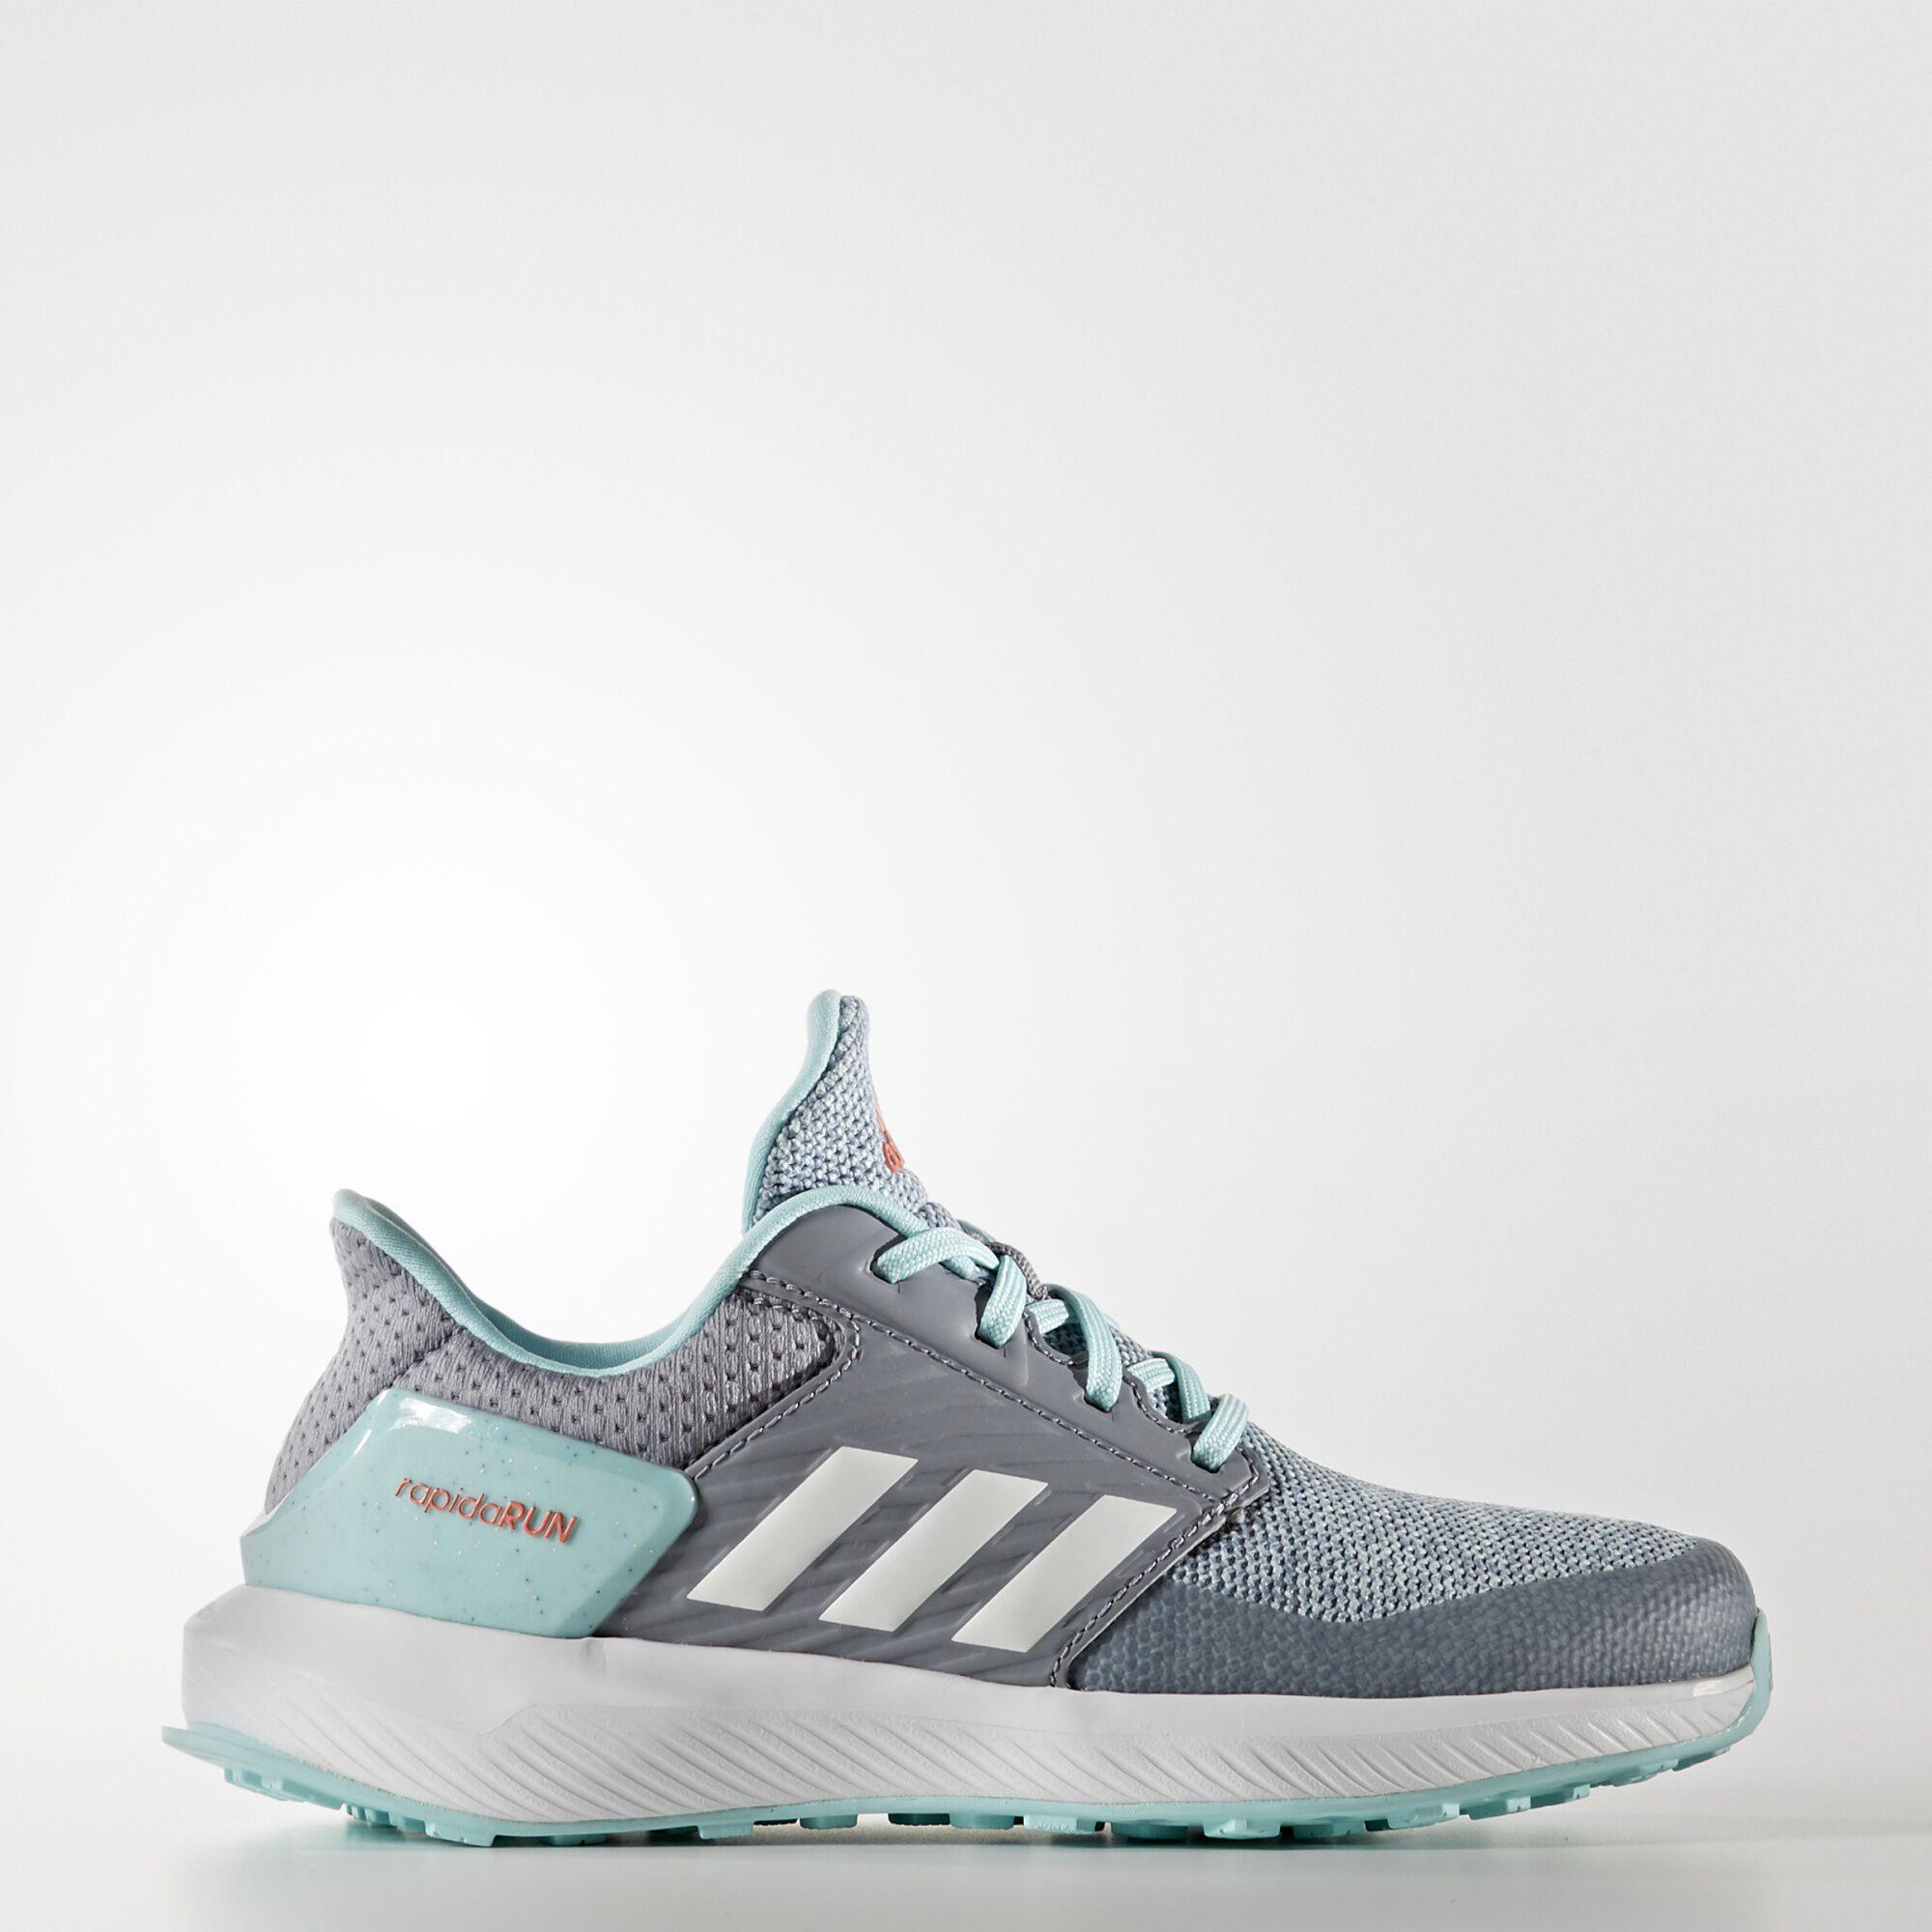 Adidas Shoes Girls 2017